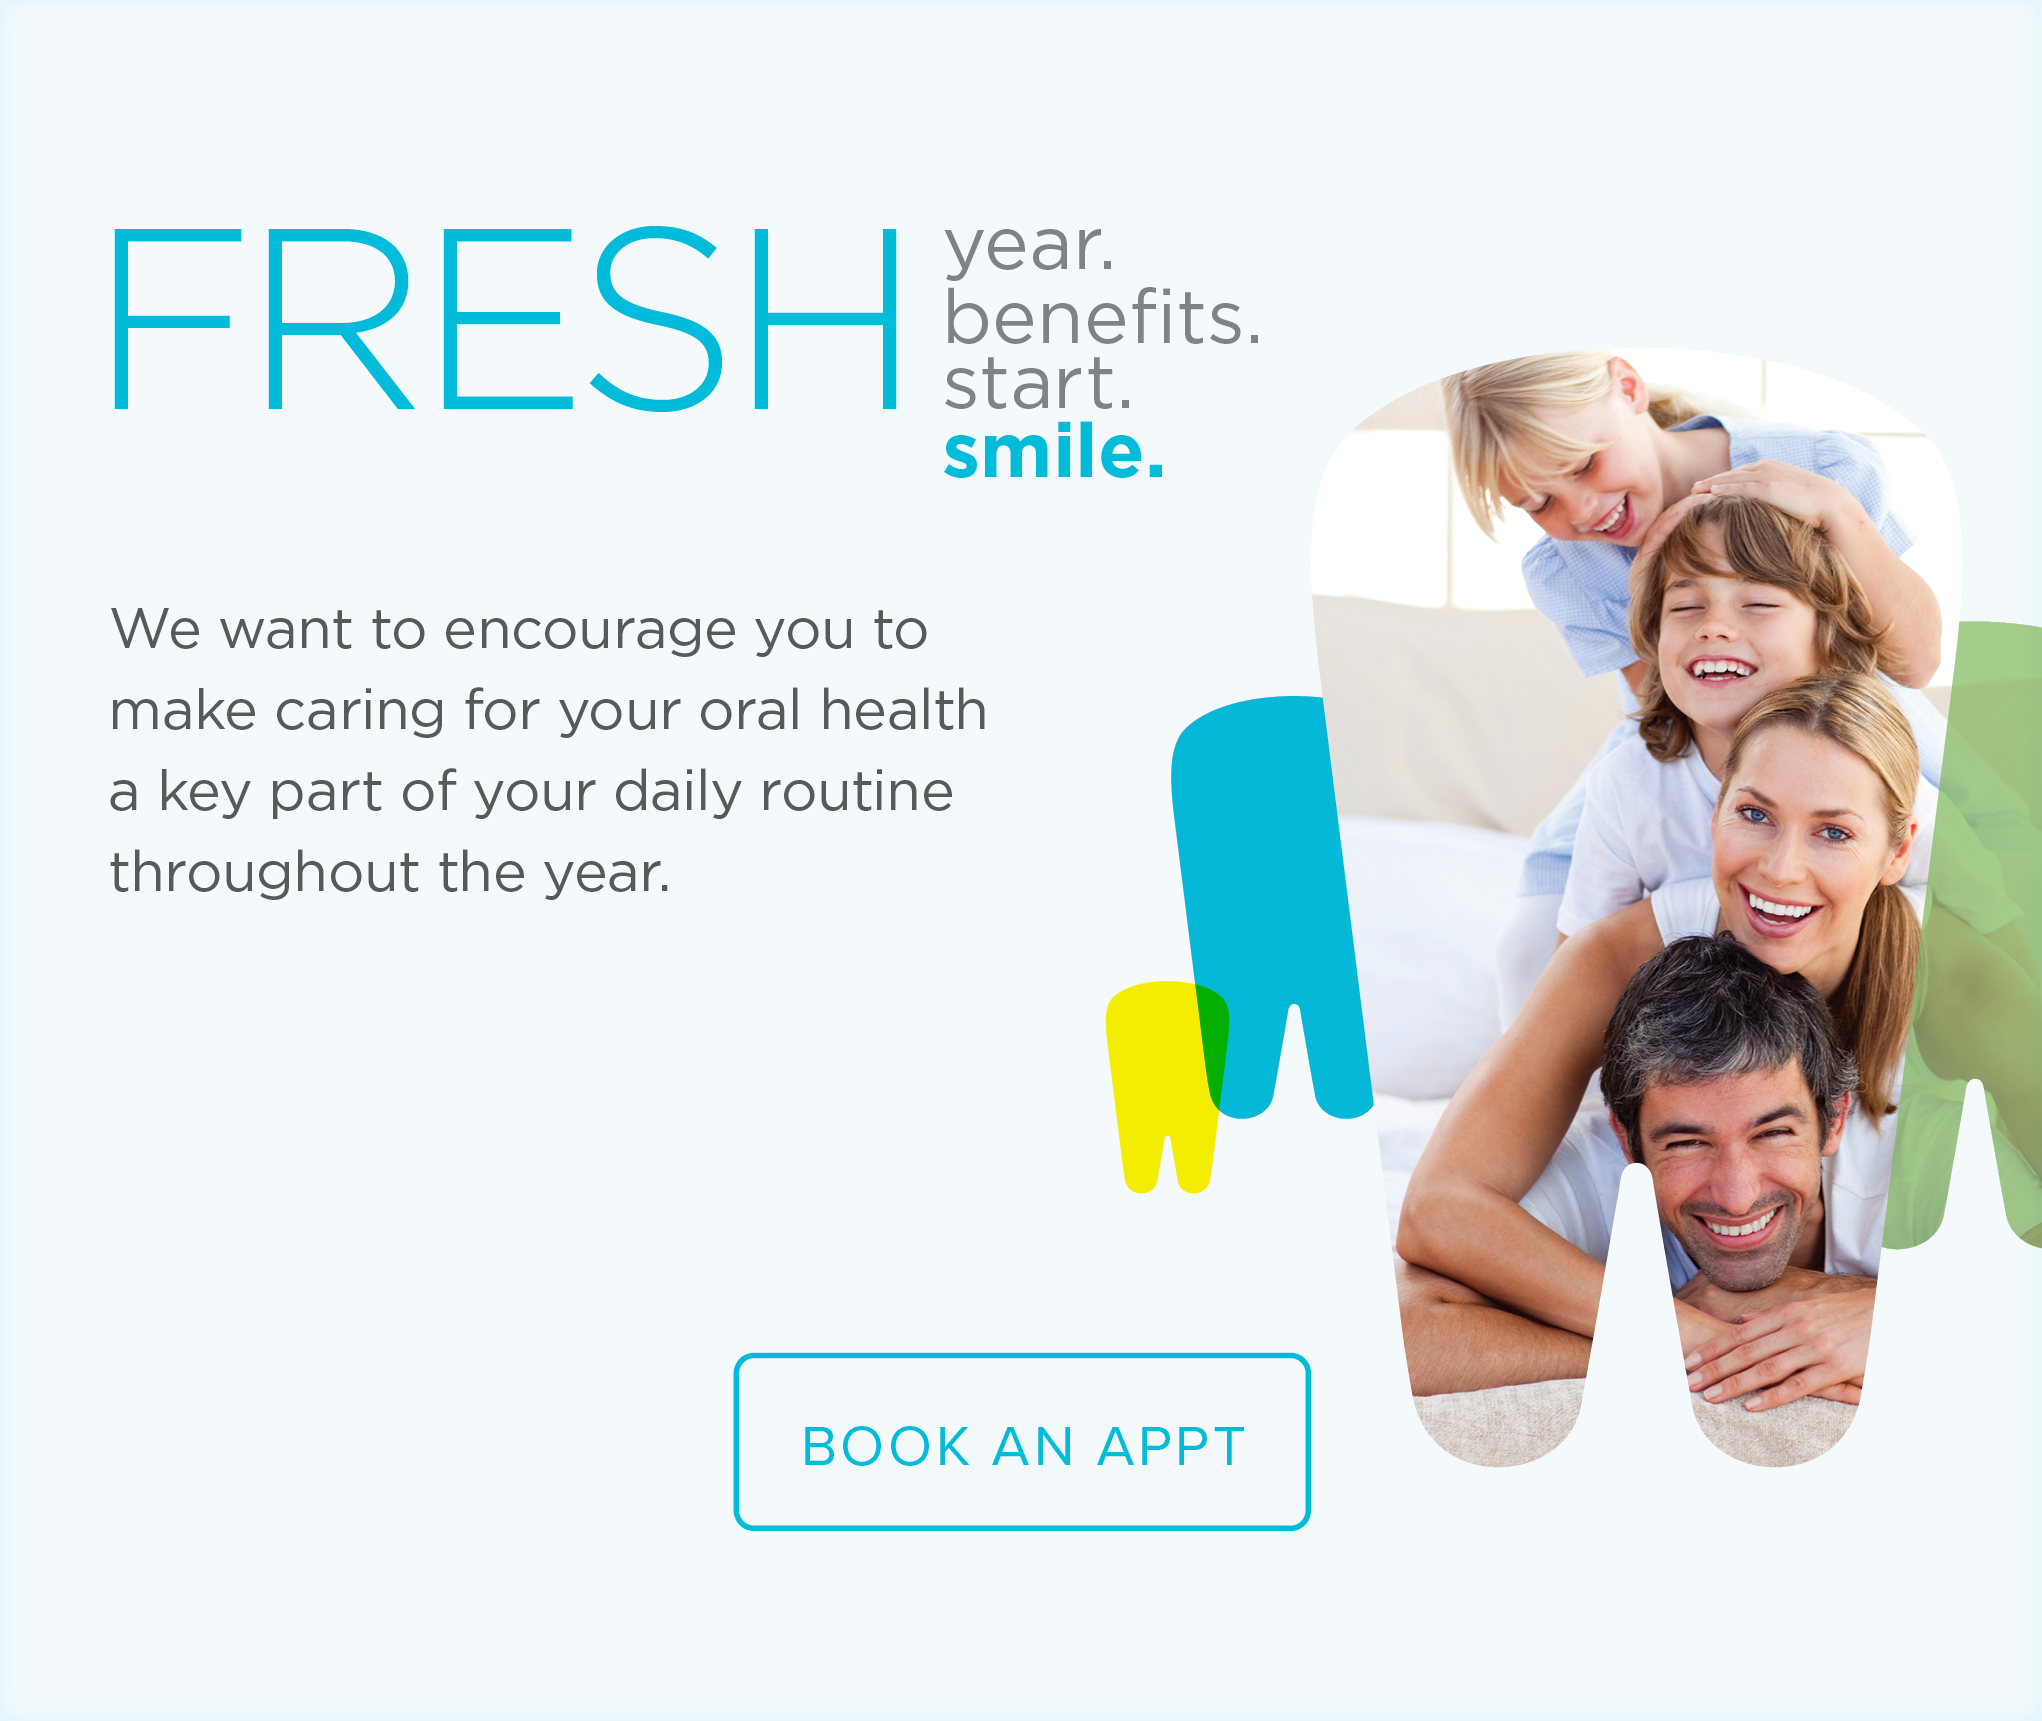 Lindero Canyon Dental Group - Make the Most of Your Benefits